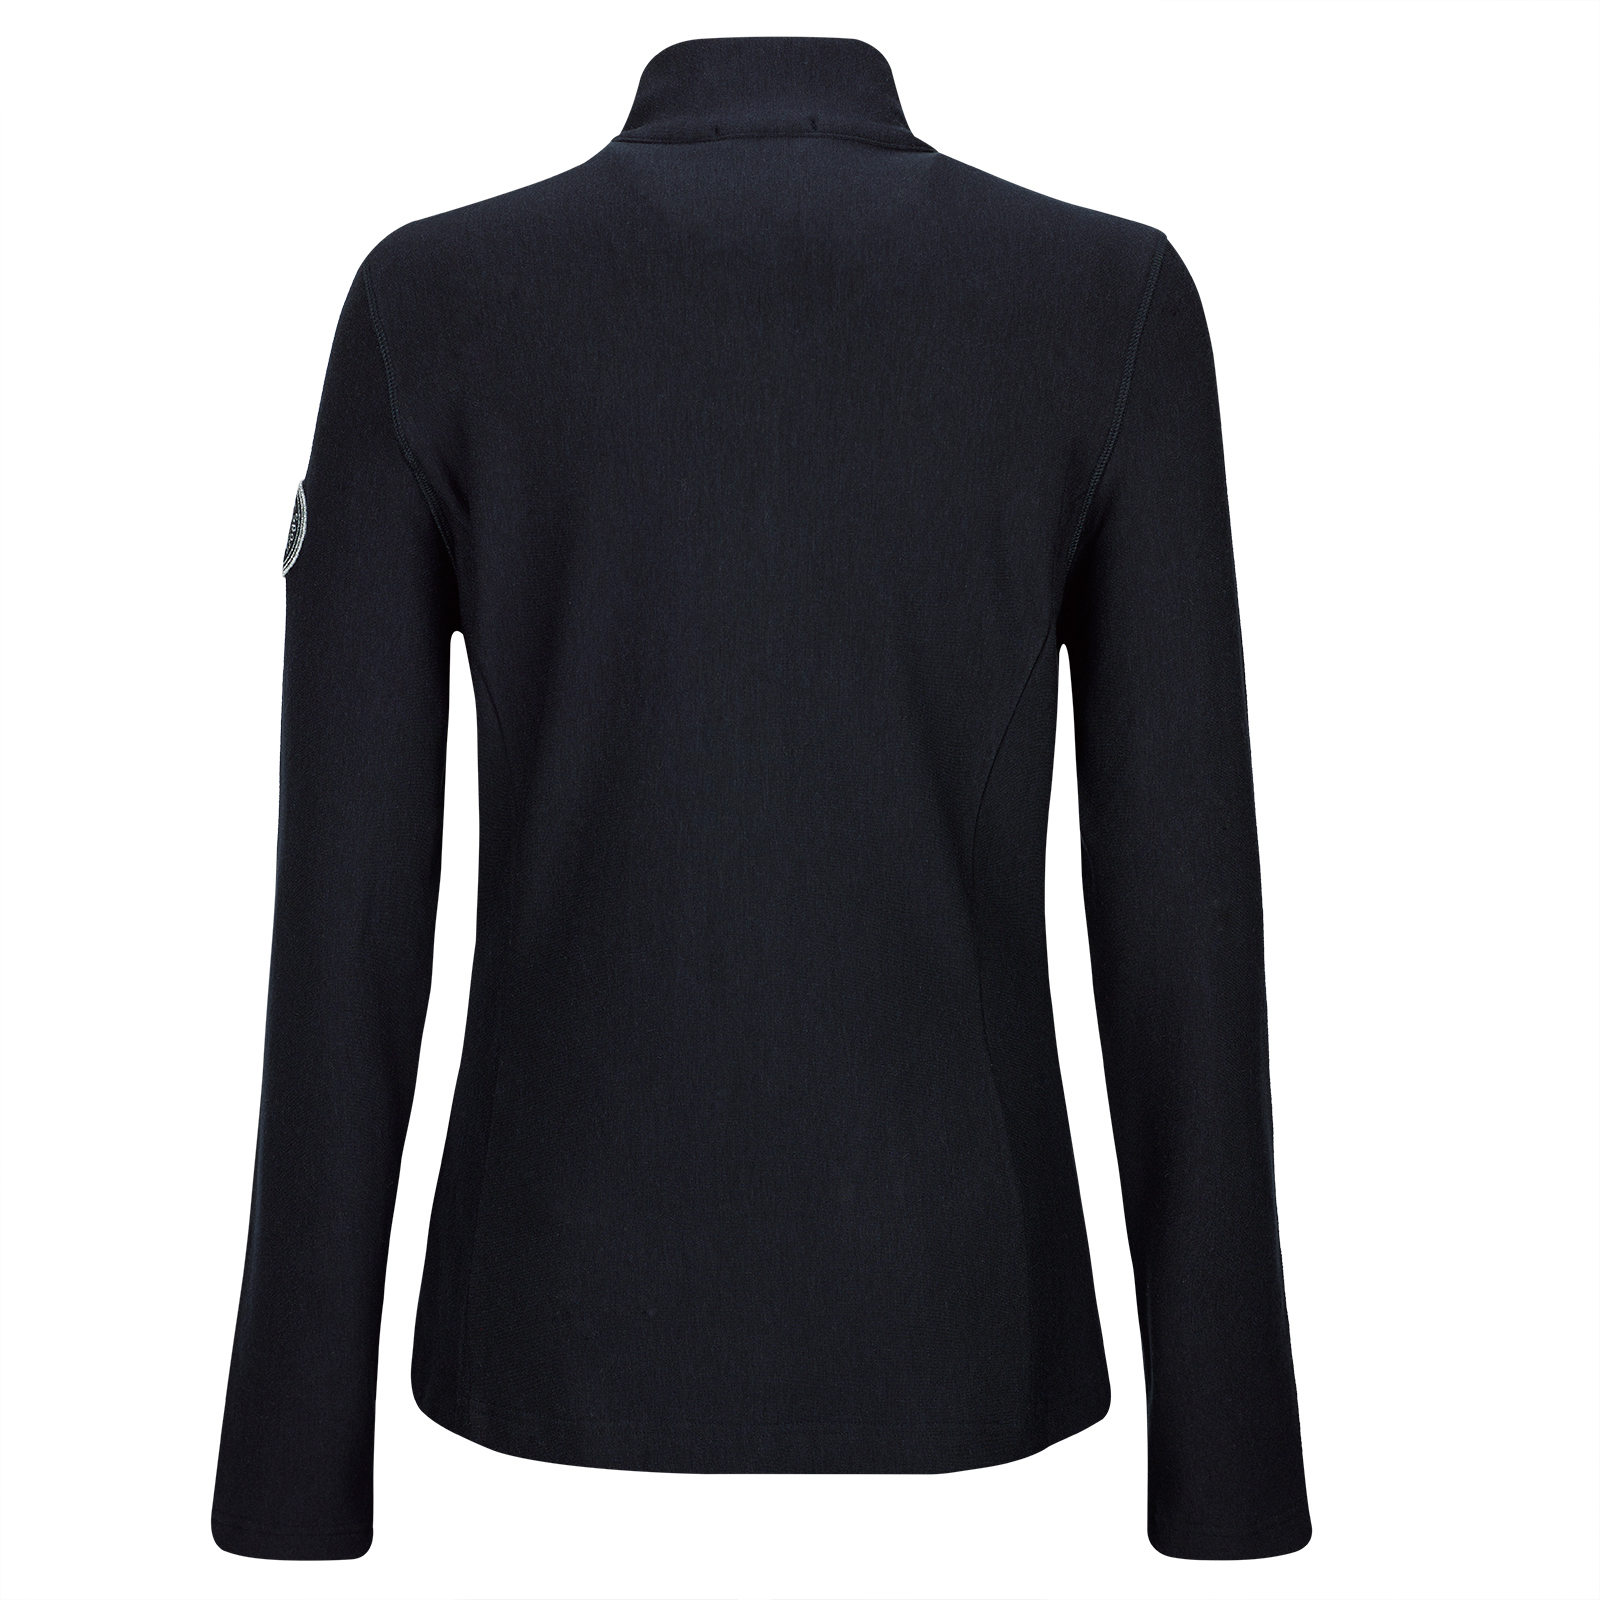 Damen Zip-Sweatshirt mit Cold Protection Funktion